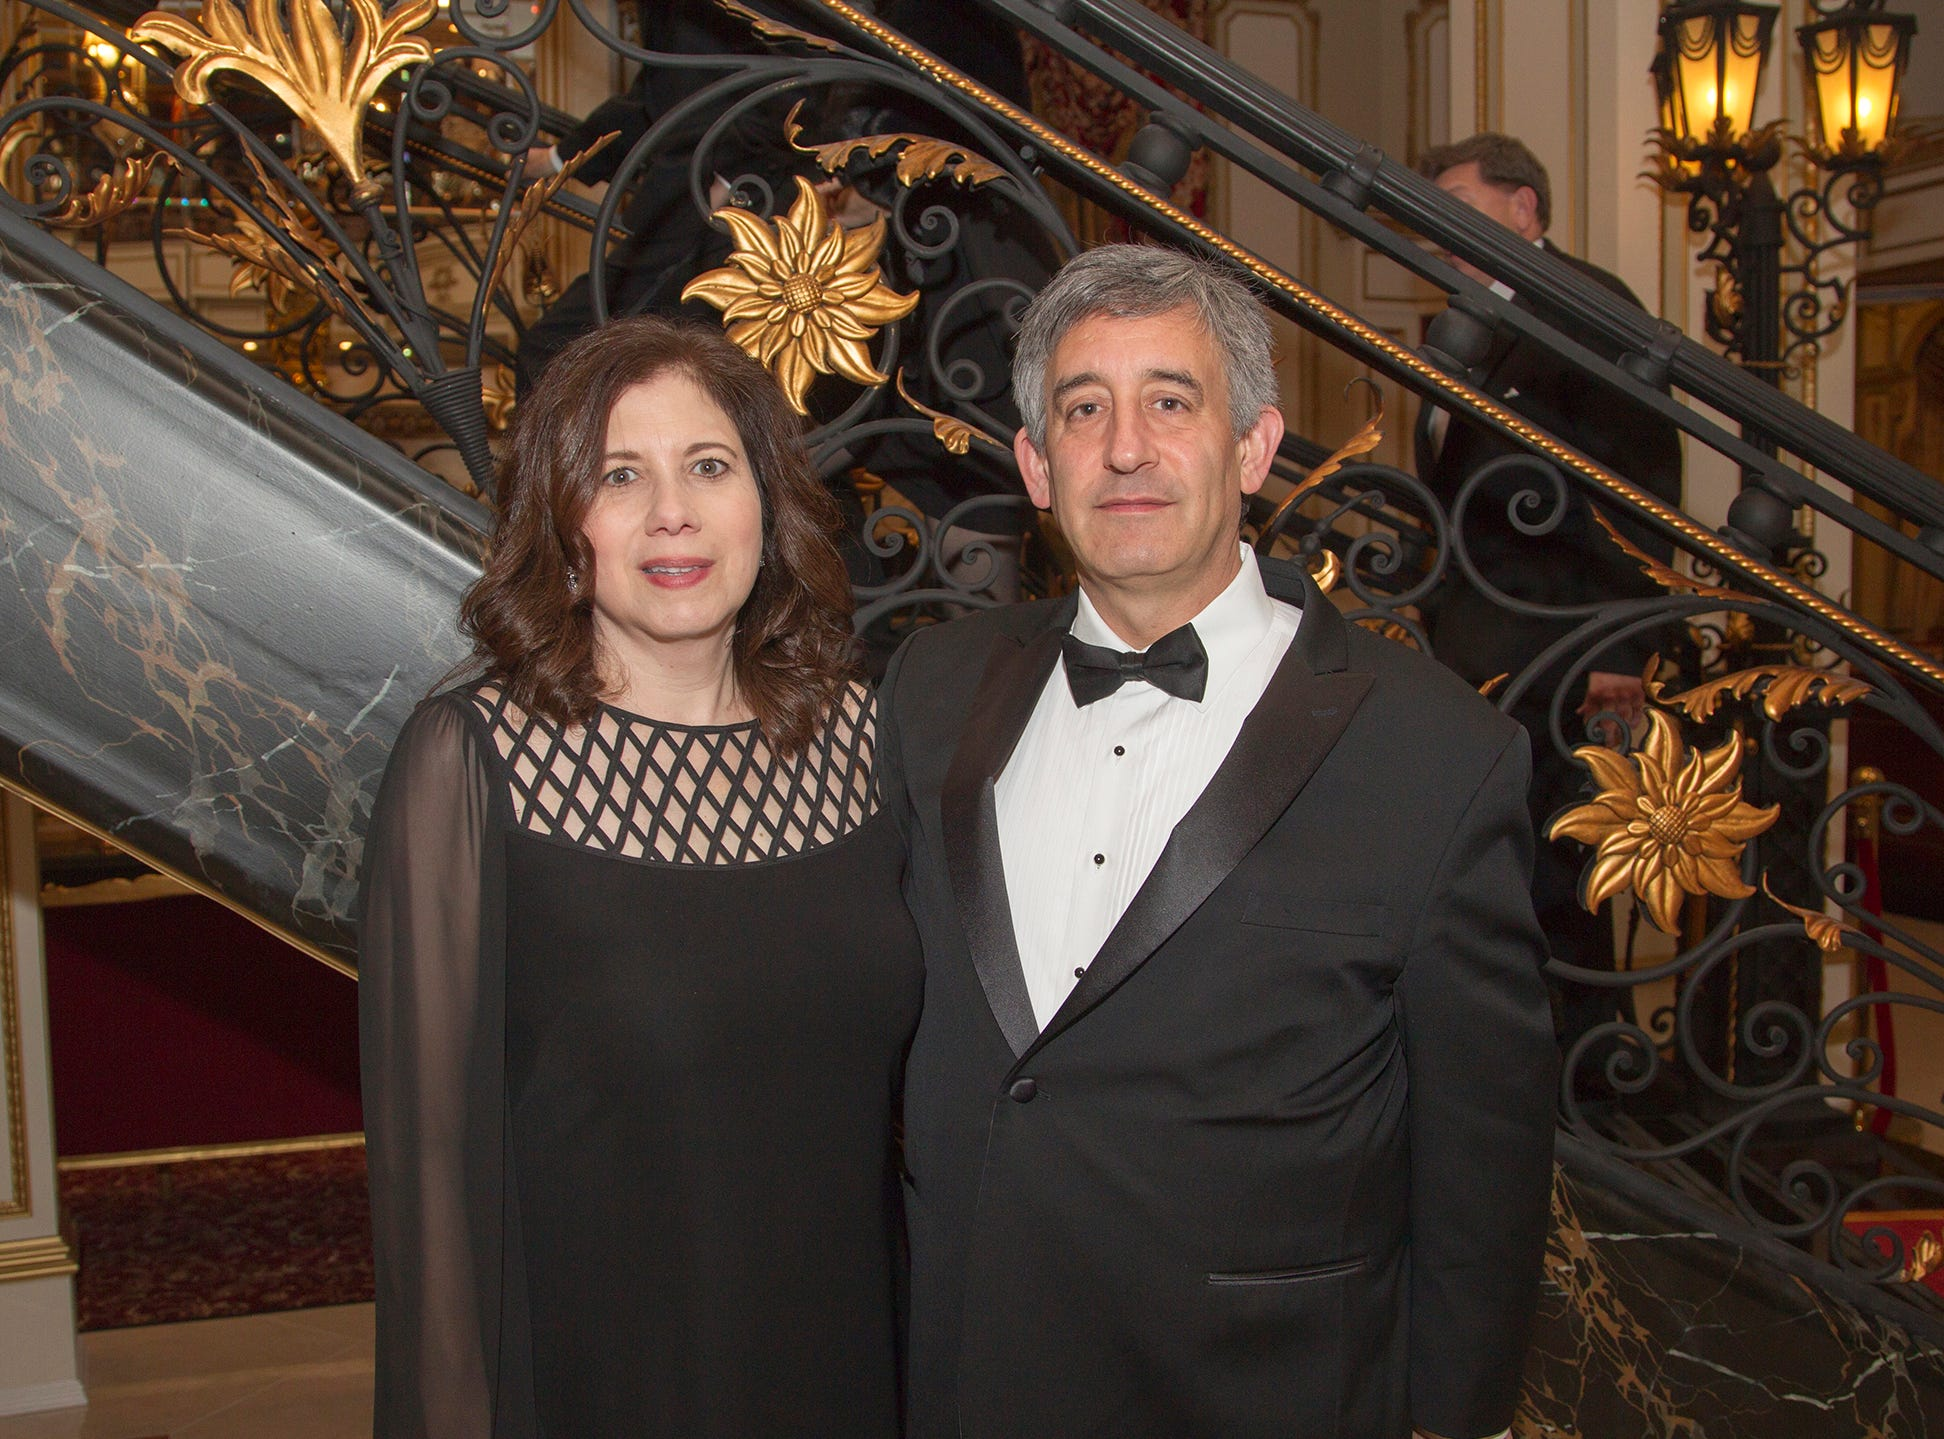 Marc and Jocelyn Dreier. The 72nd Annual Valley Ball gala at The Legacy Castle in Pompton Plains. 11/16/2018